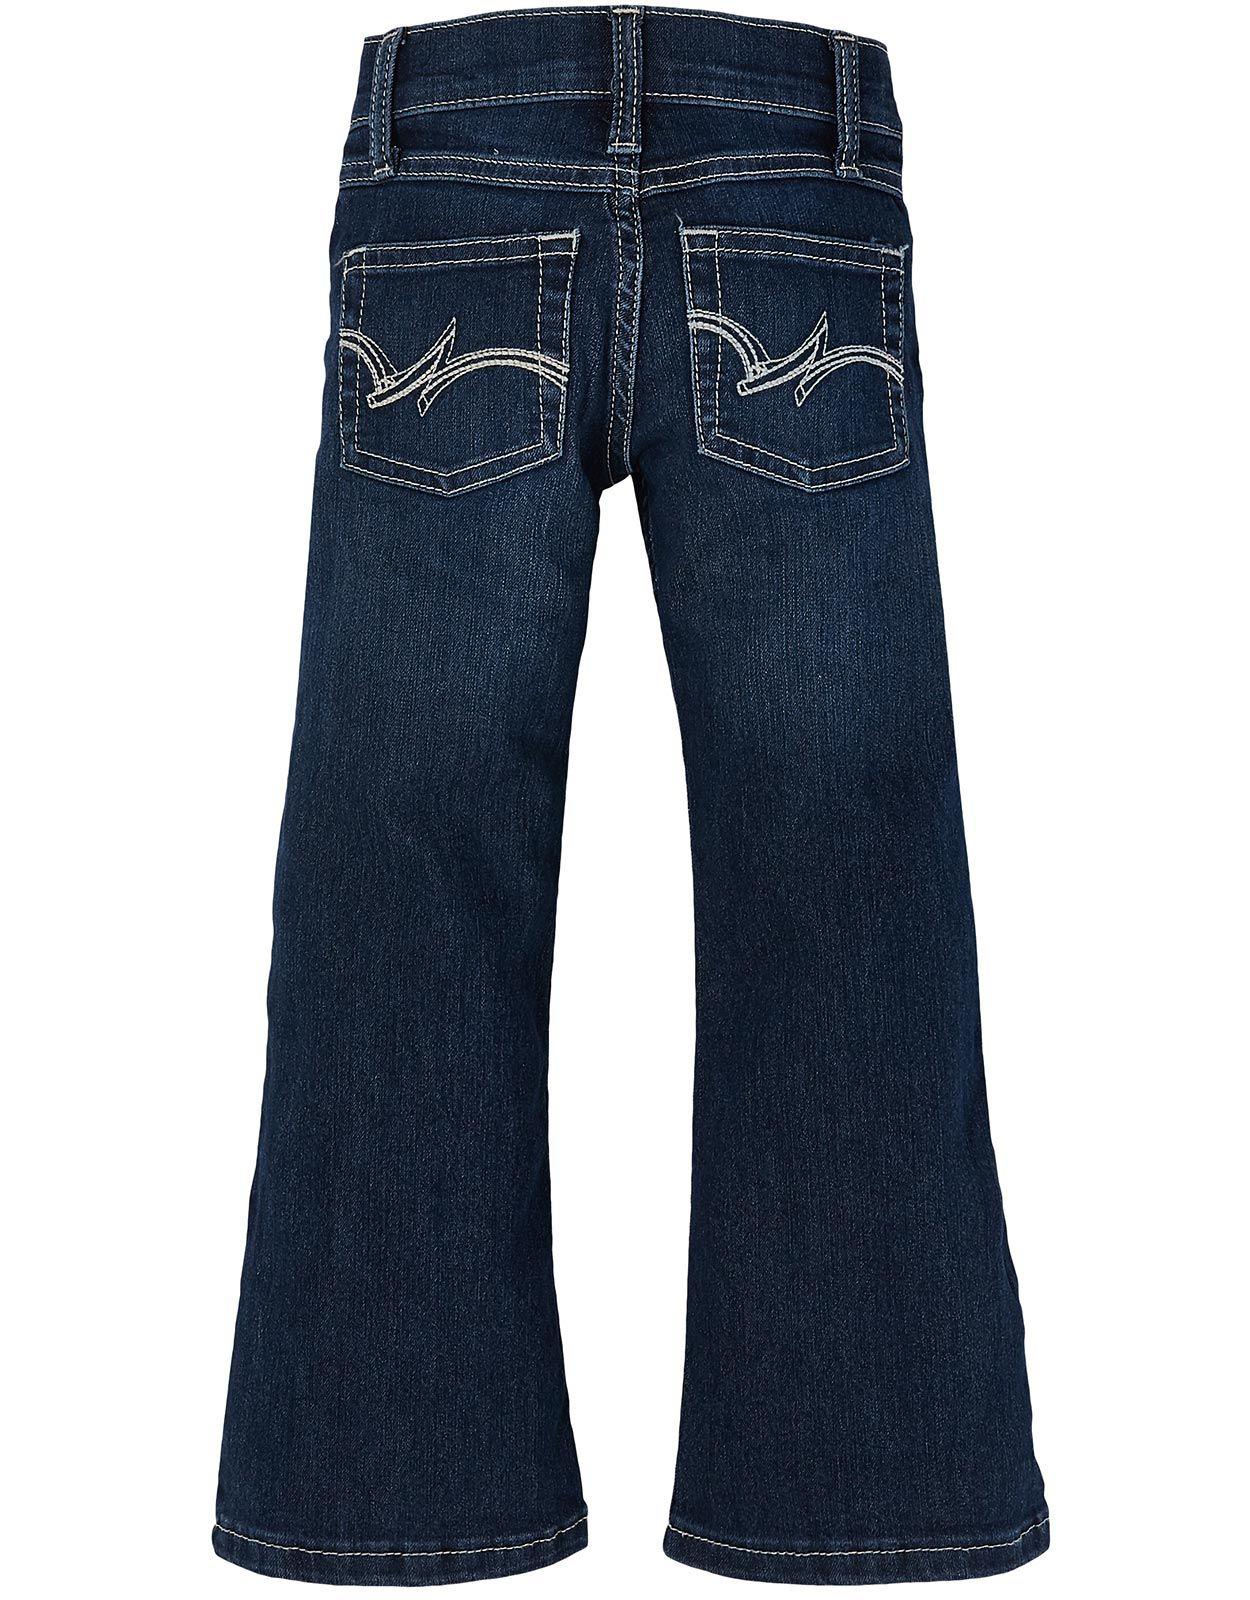 Wrangler Girl's Stretch Low Rise Regular Fit Boot Cut Jeans (Sizes 4-14) - Dark Blue